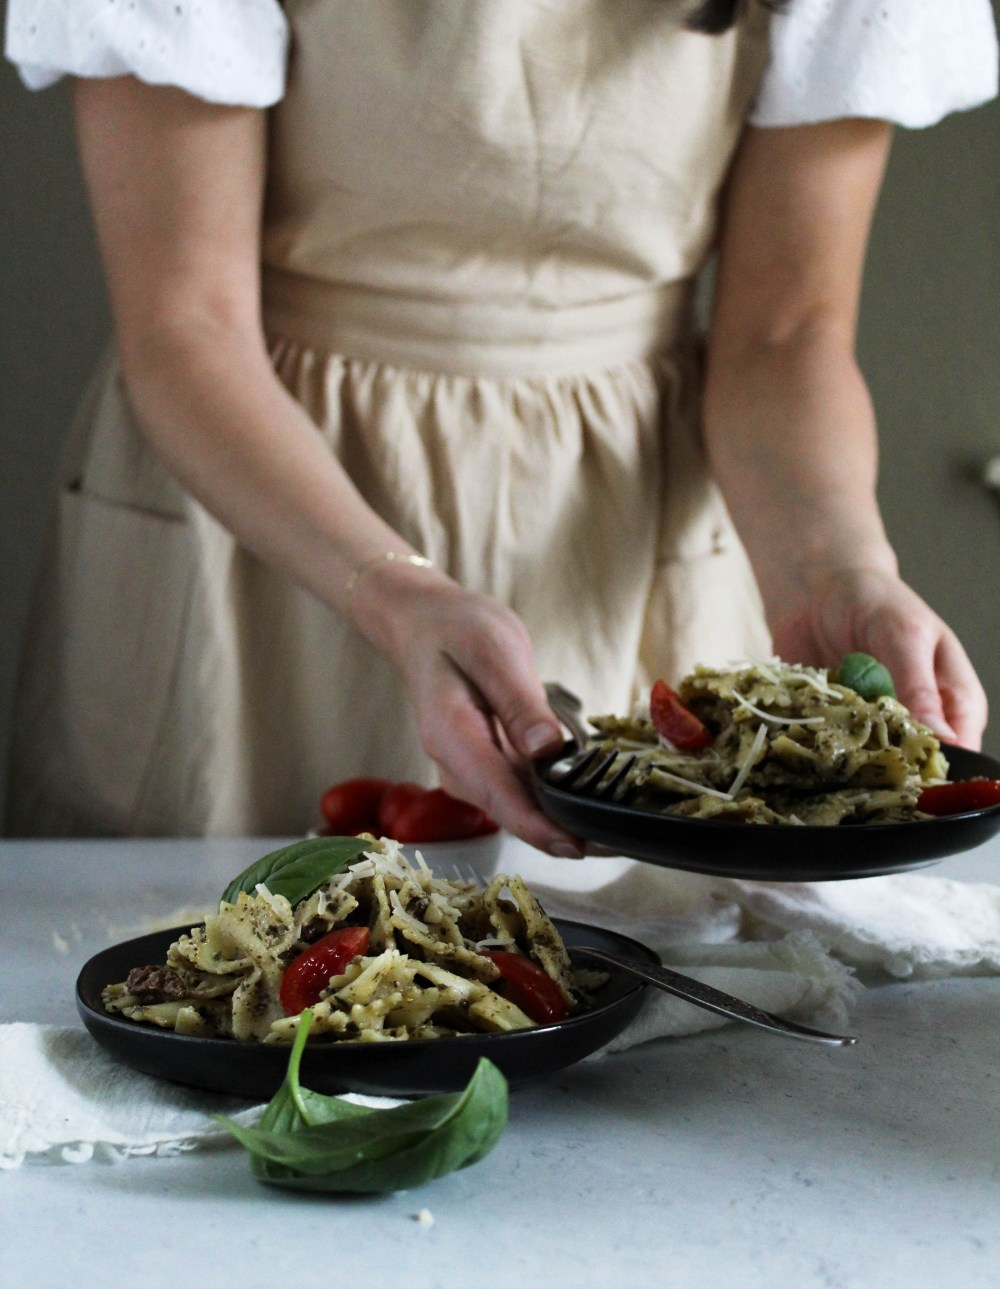 Kait serving a plate of pesto pasta.